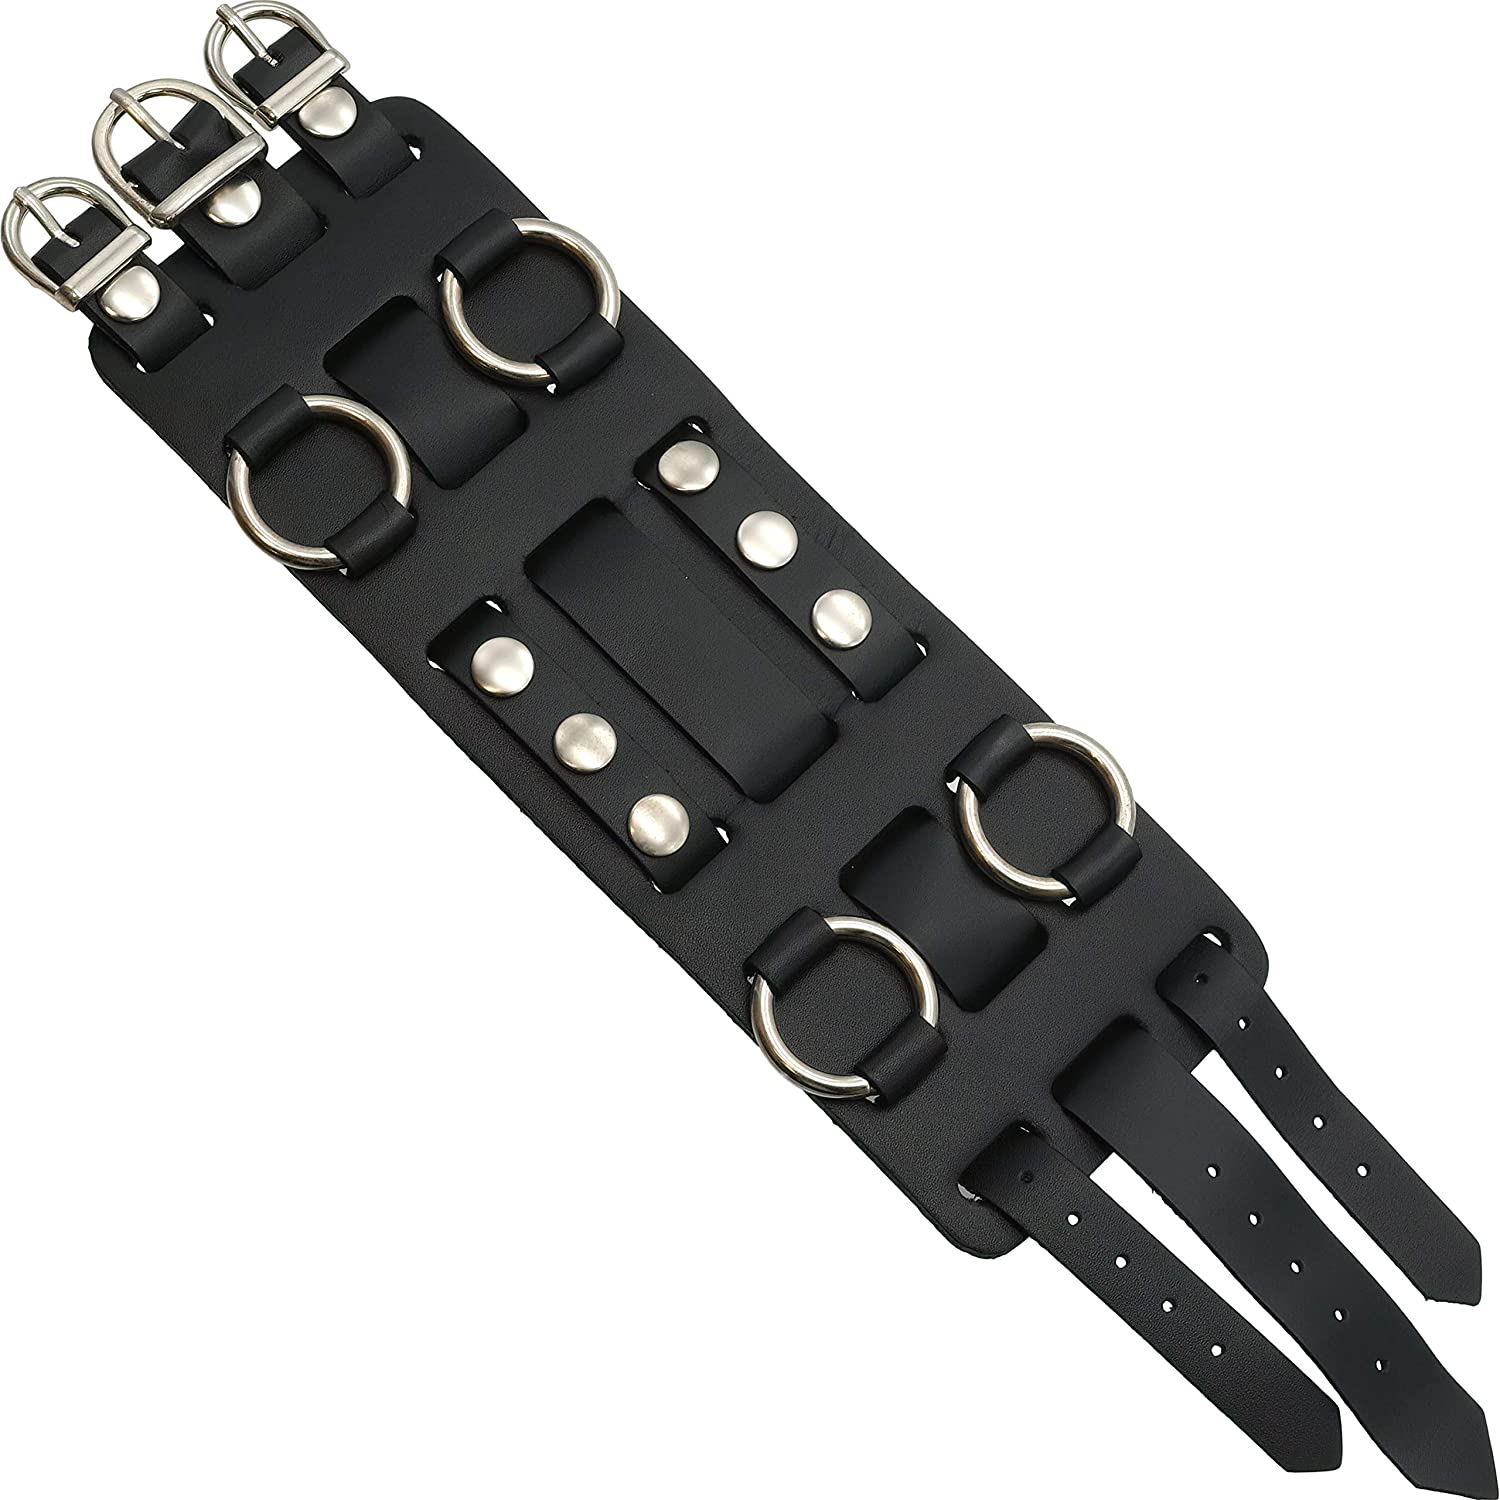 b8185c494d1 Wide black leather cuff wrist watch band rock roll home kitchen jpg  1500x1500 1960s thick leather